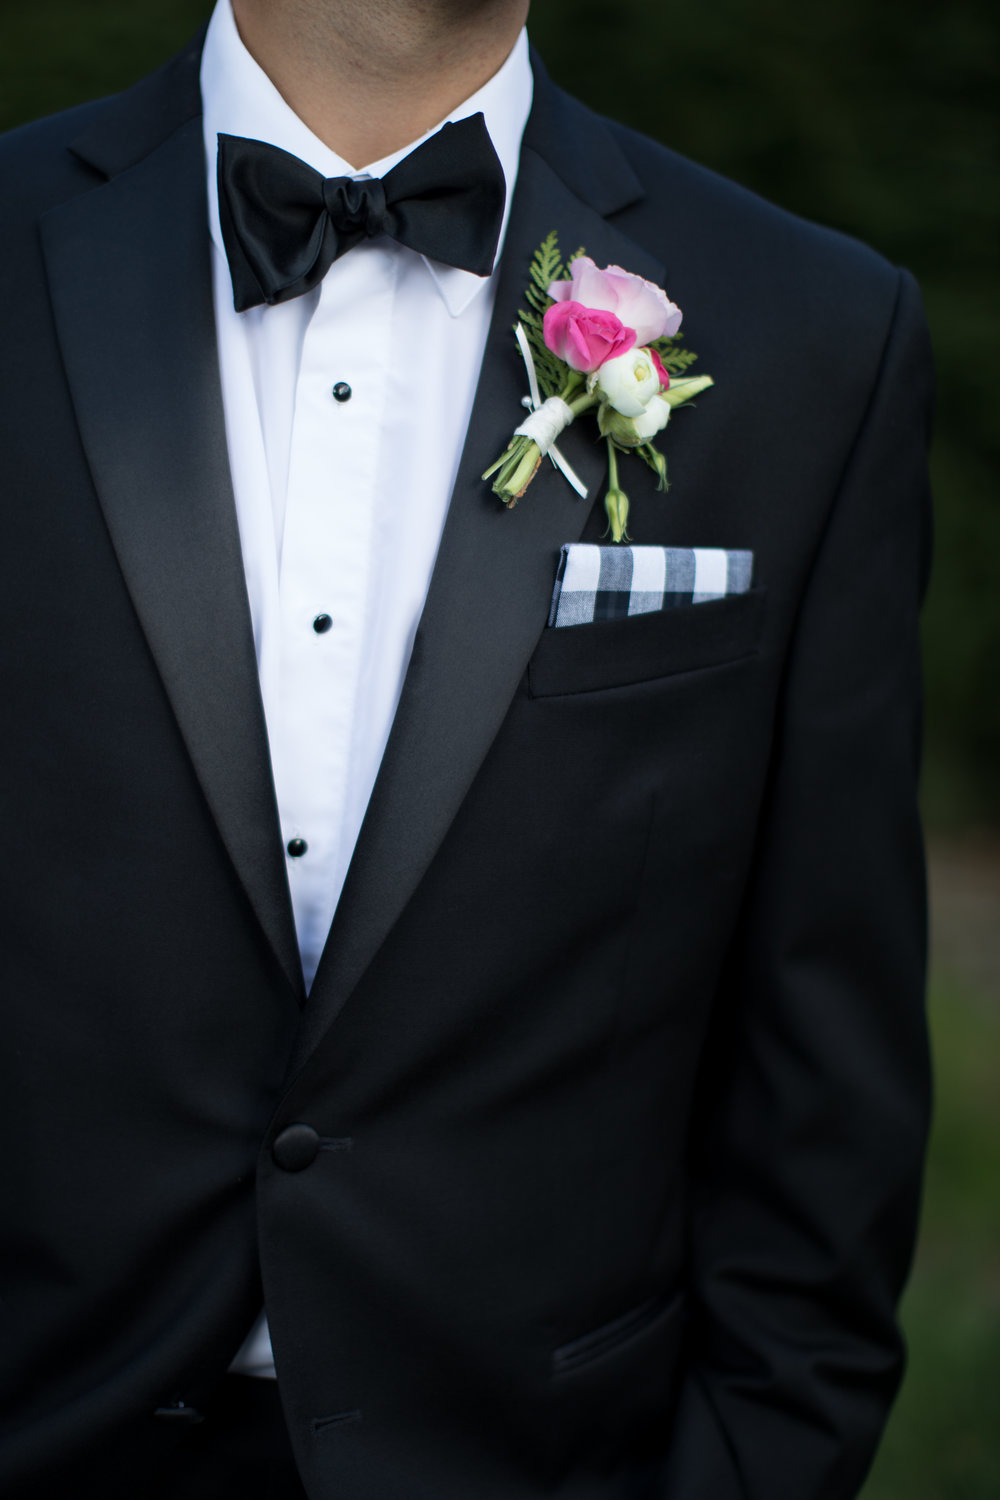 Wedding photography southern groom pocket square tuxedo bowtie